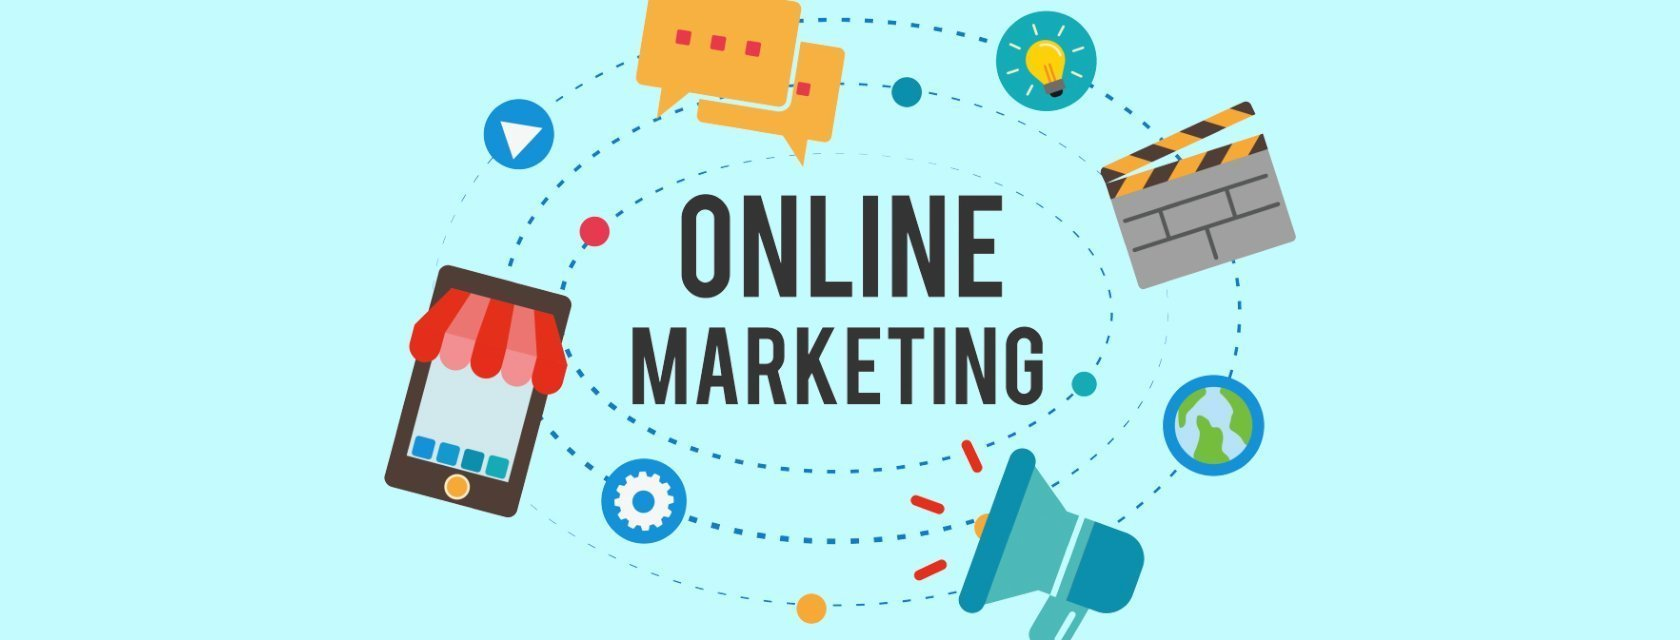 4 Principles and 5 Ingredients for your Digital Marketing Campaign Success